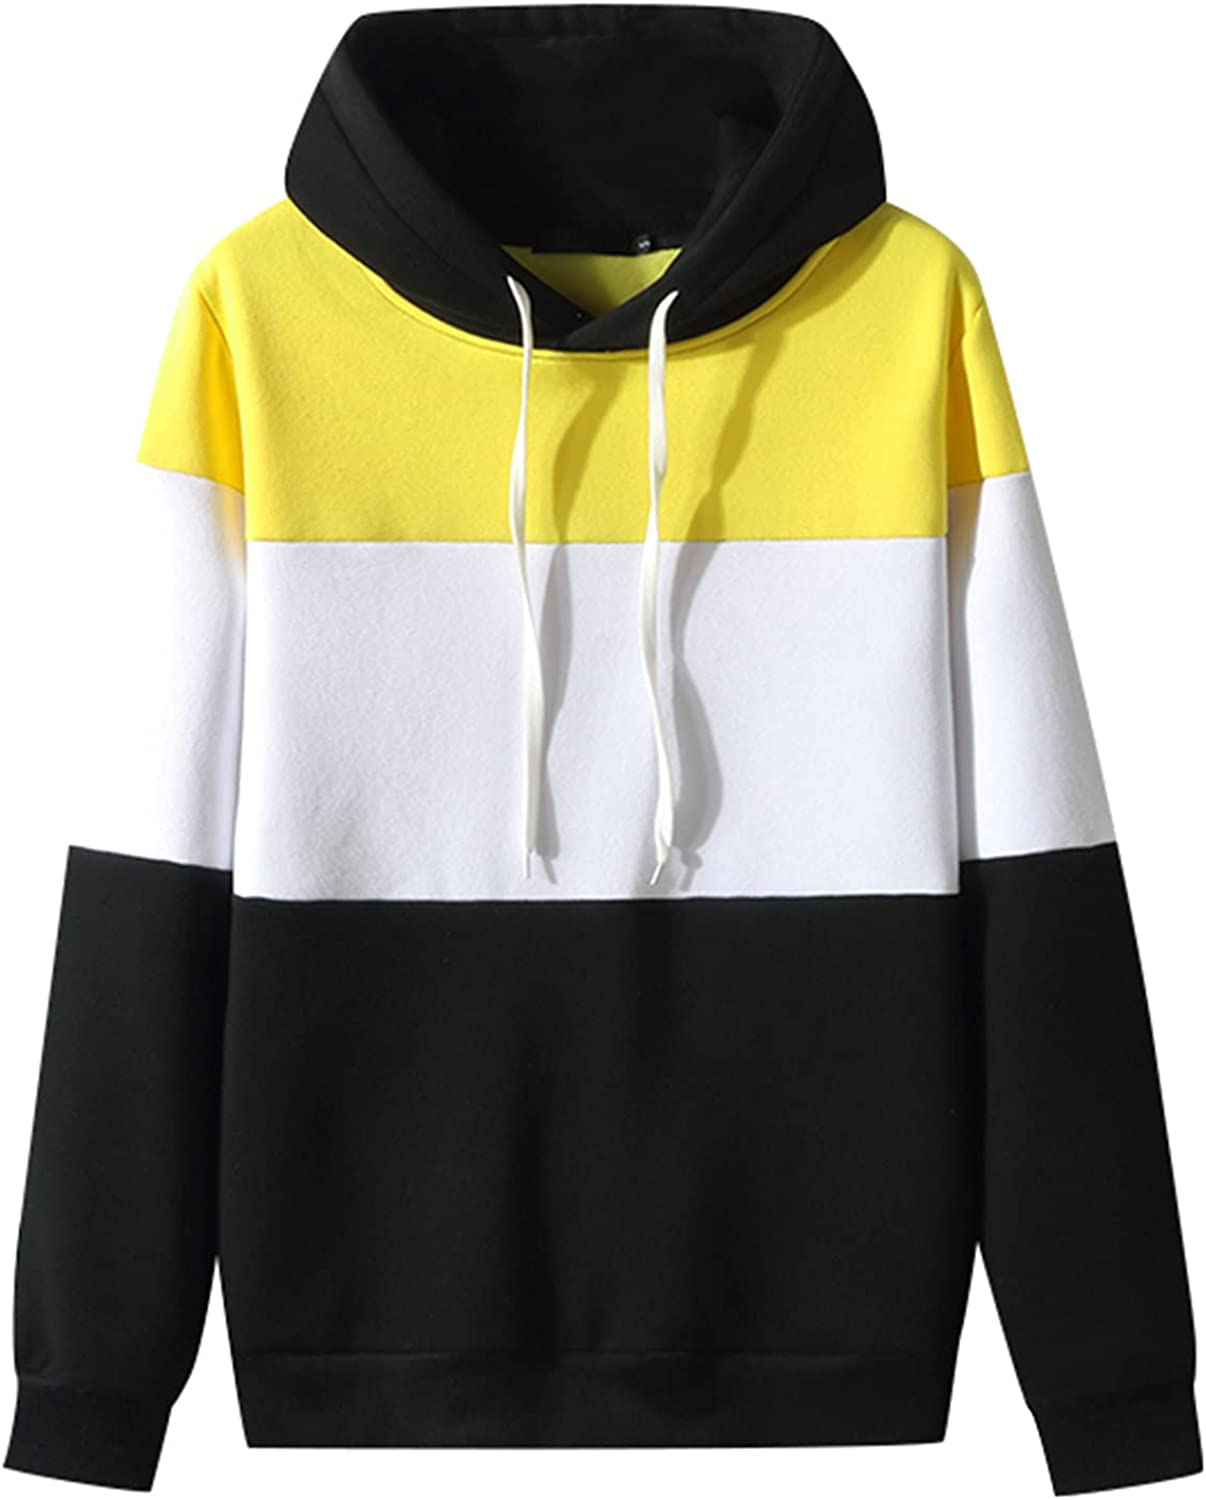 Huangse Hooded Sweatshirt for Men Autumn Winter Sports Jackets Fahion Color Block Long Sleeve Pullover Shirt with Pockets